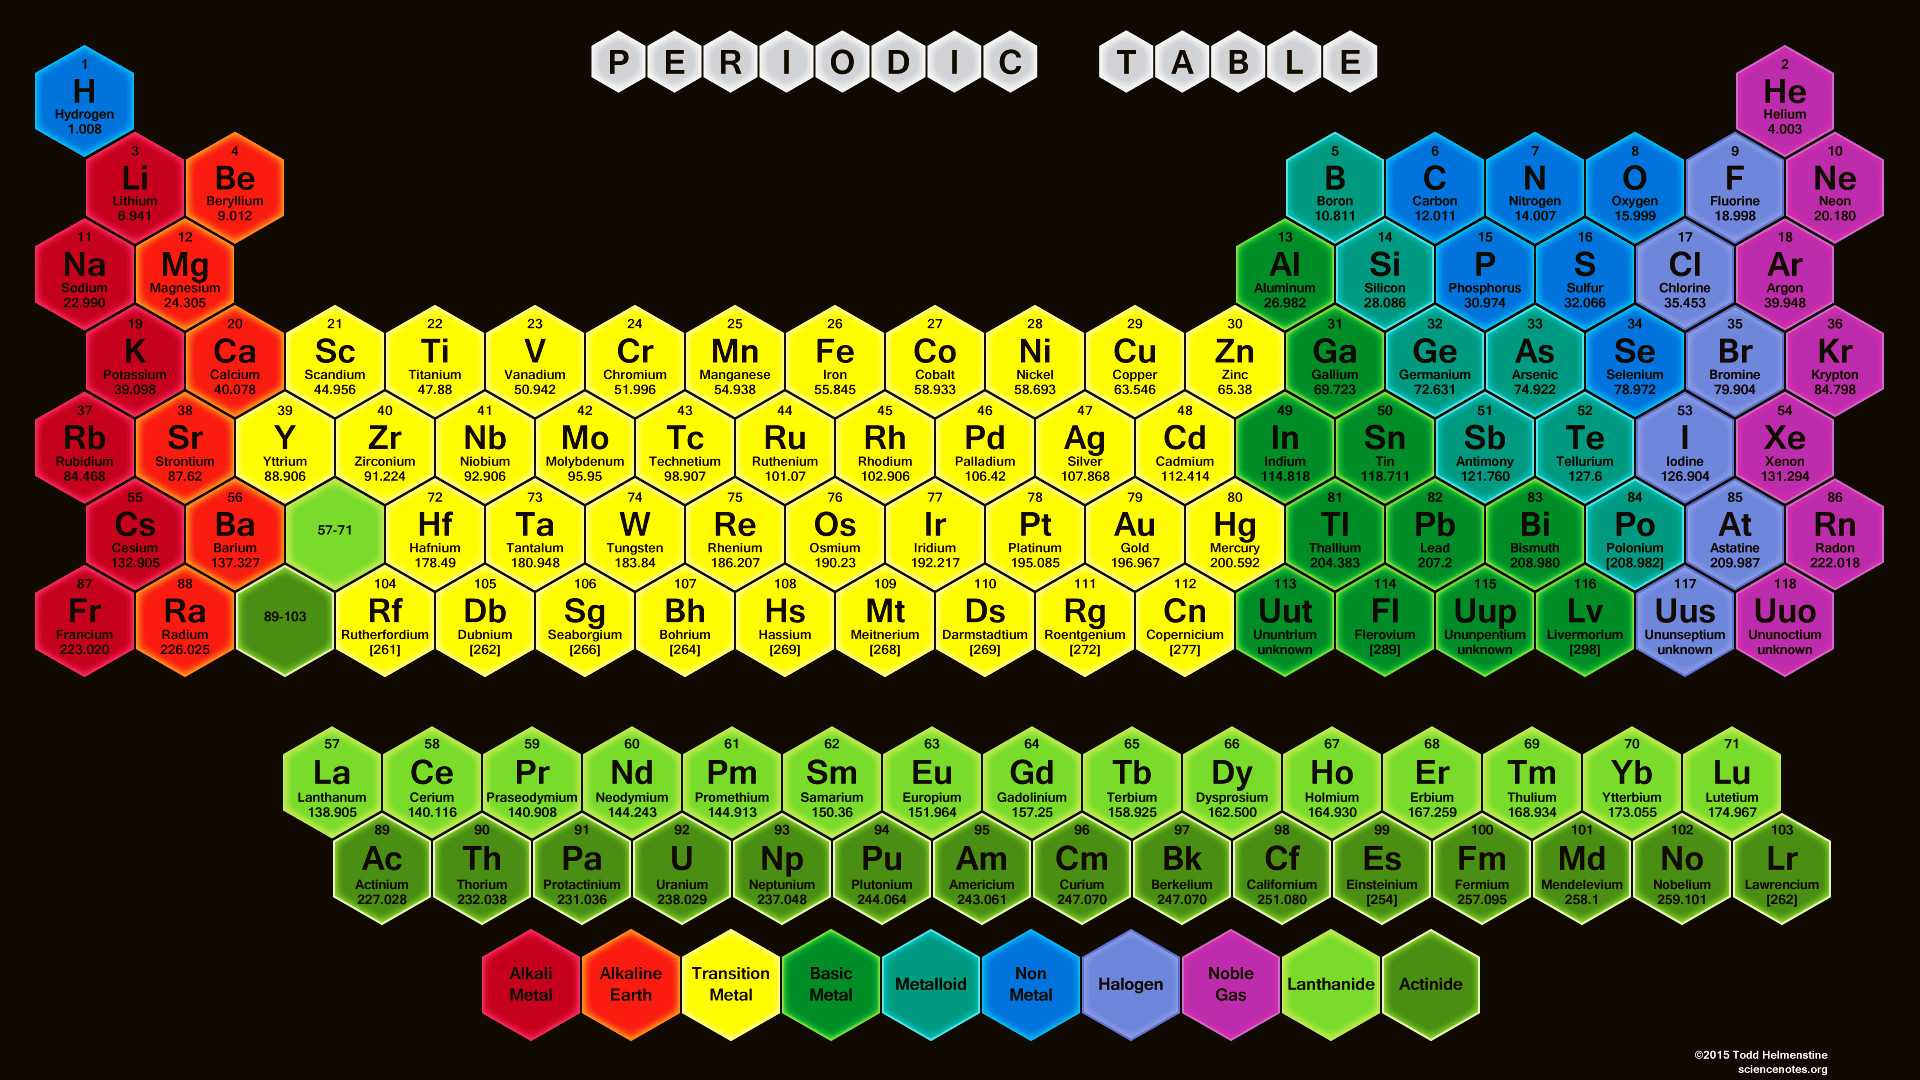 Periodic table of elements desktop wallpaper 1920x1080 color hexagon periodic table wallpaper gamestrikefo Images